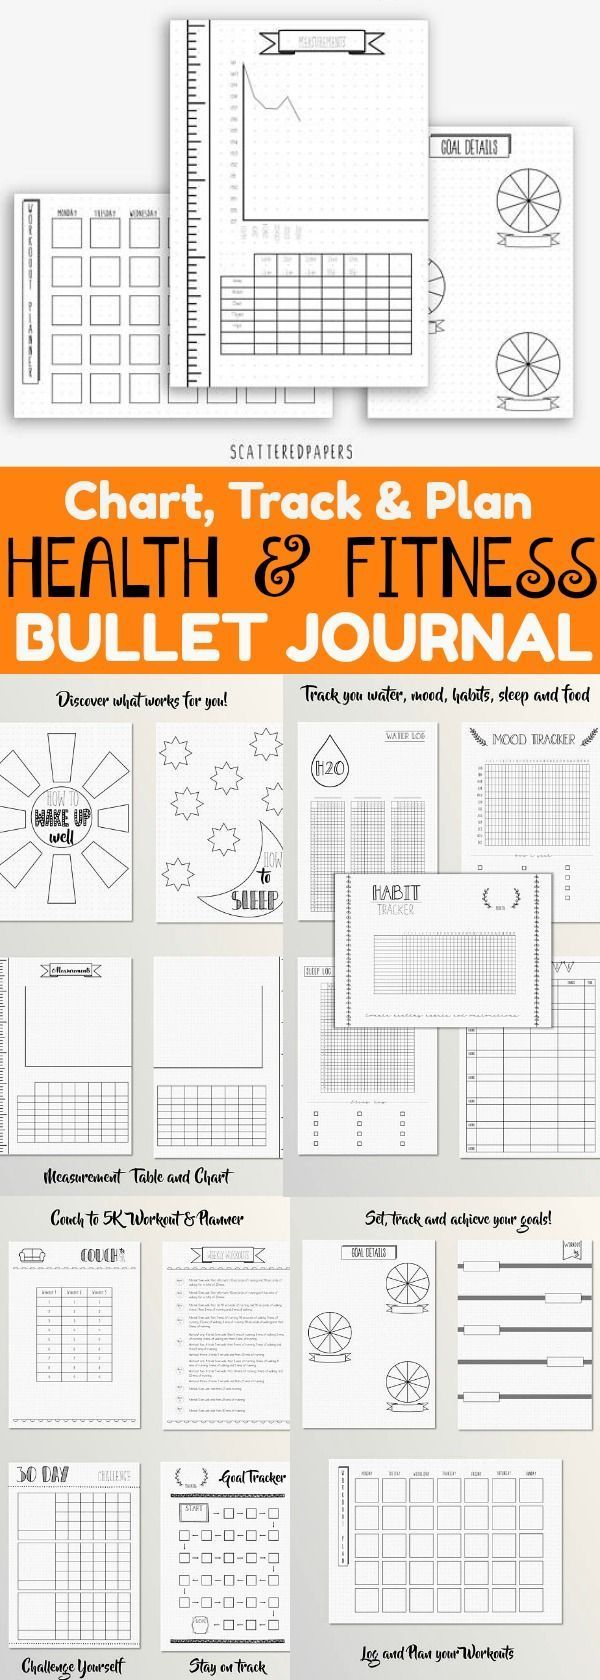 Bullet Journal Health and Fitness - Dotted Grid - BUJO - Printable ,  #bujo #bullet #Dotted #Fitness...